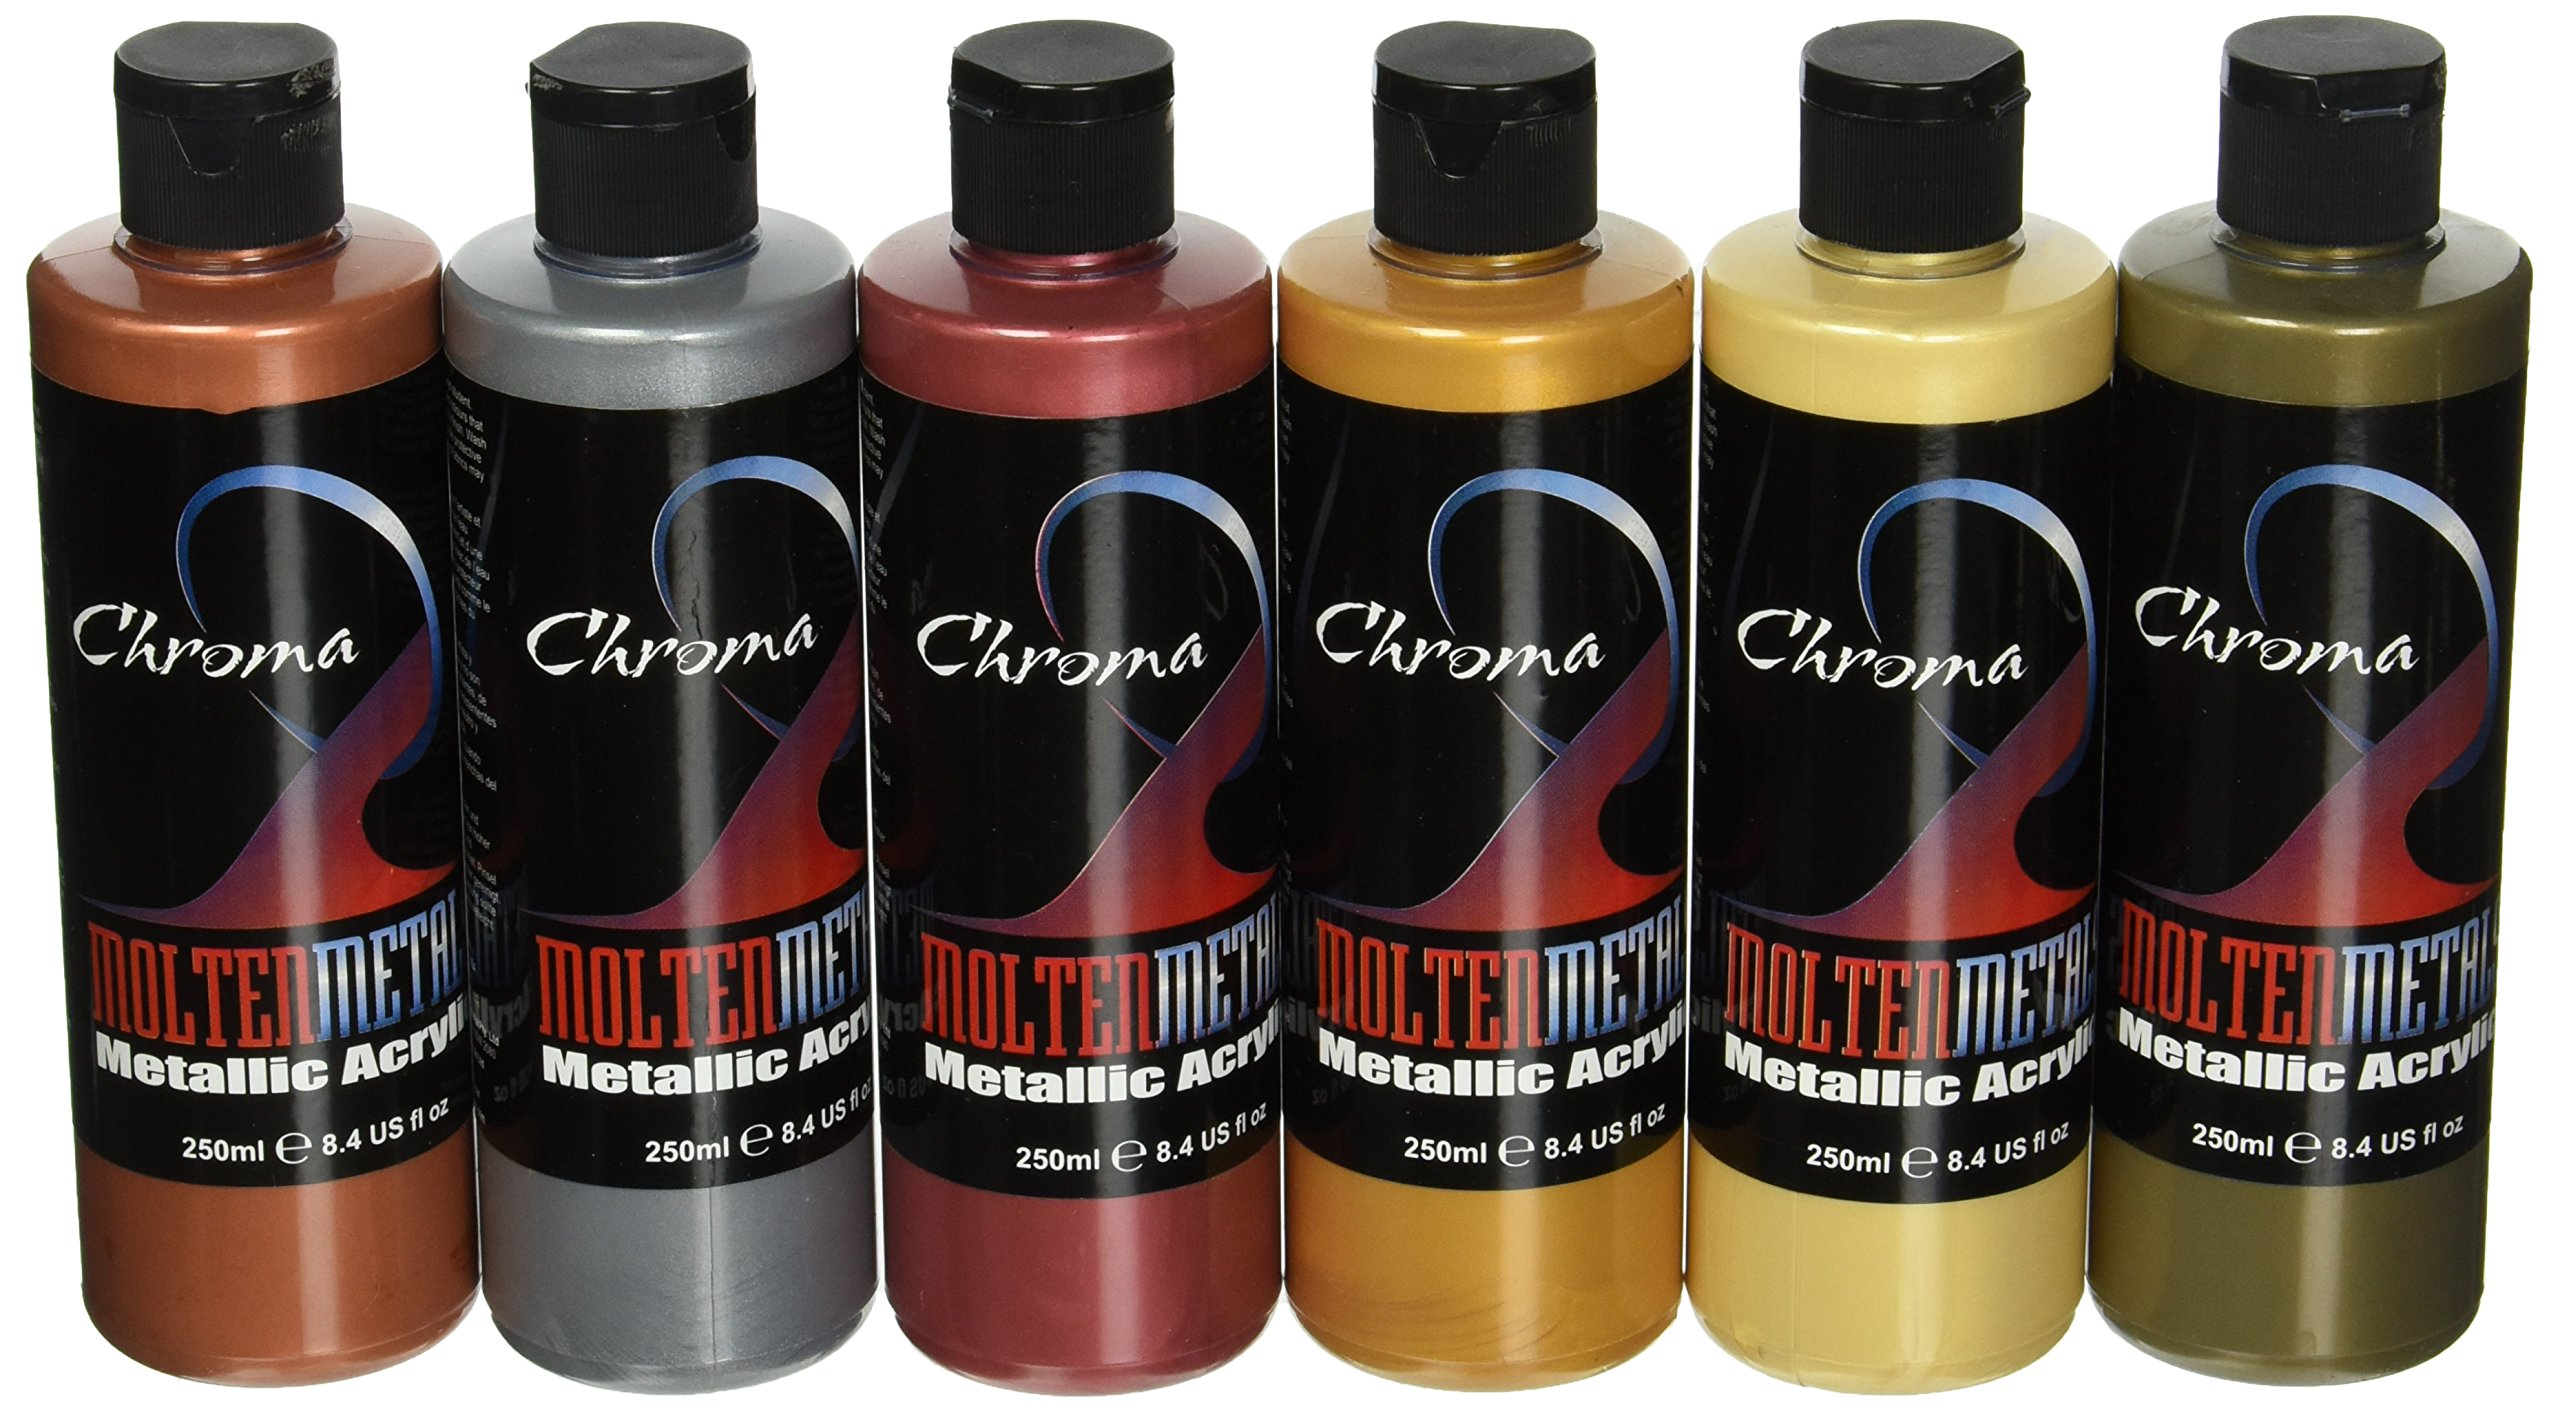 Chroma Molten Metals Acrylic Paint Set, 8.4 oz Bottle, Assorted Color, Set of 6 - 1442894 by Chroma